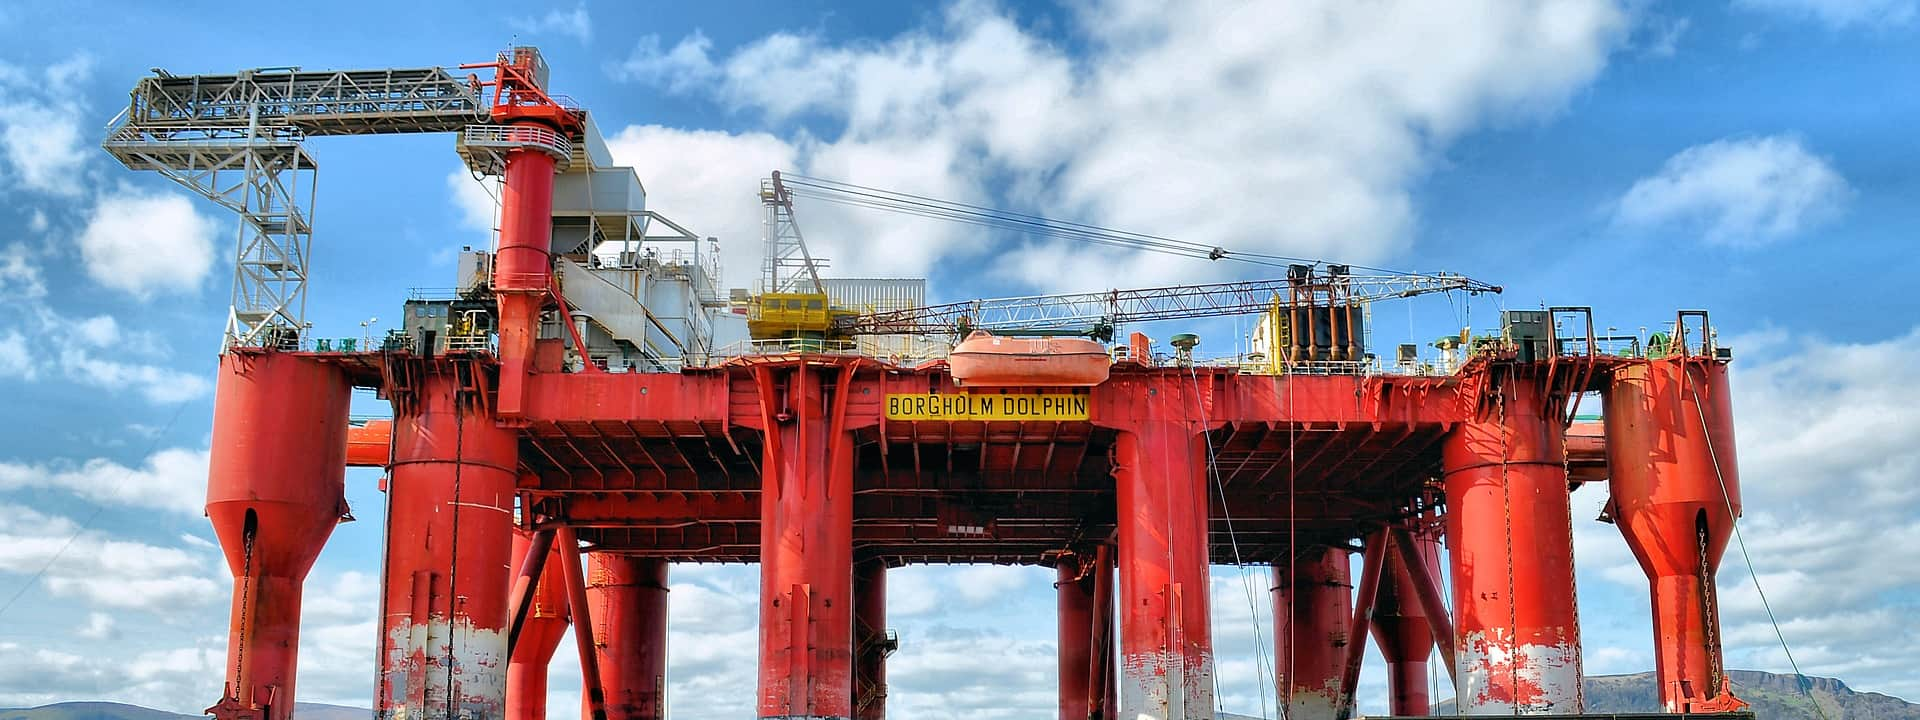 image of an oil rig